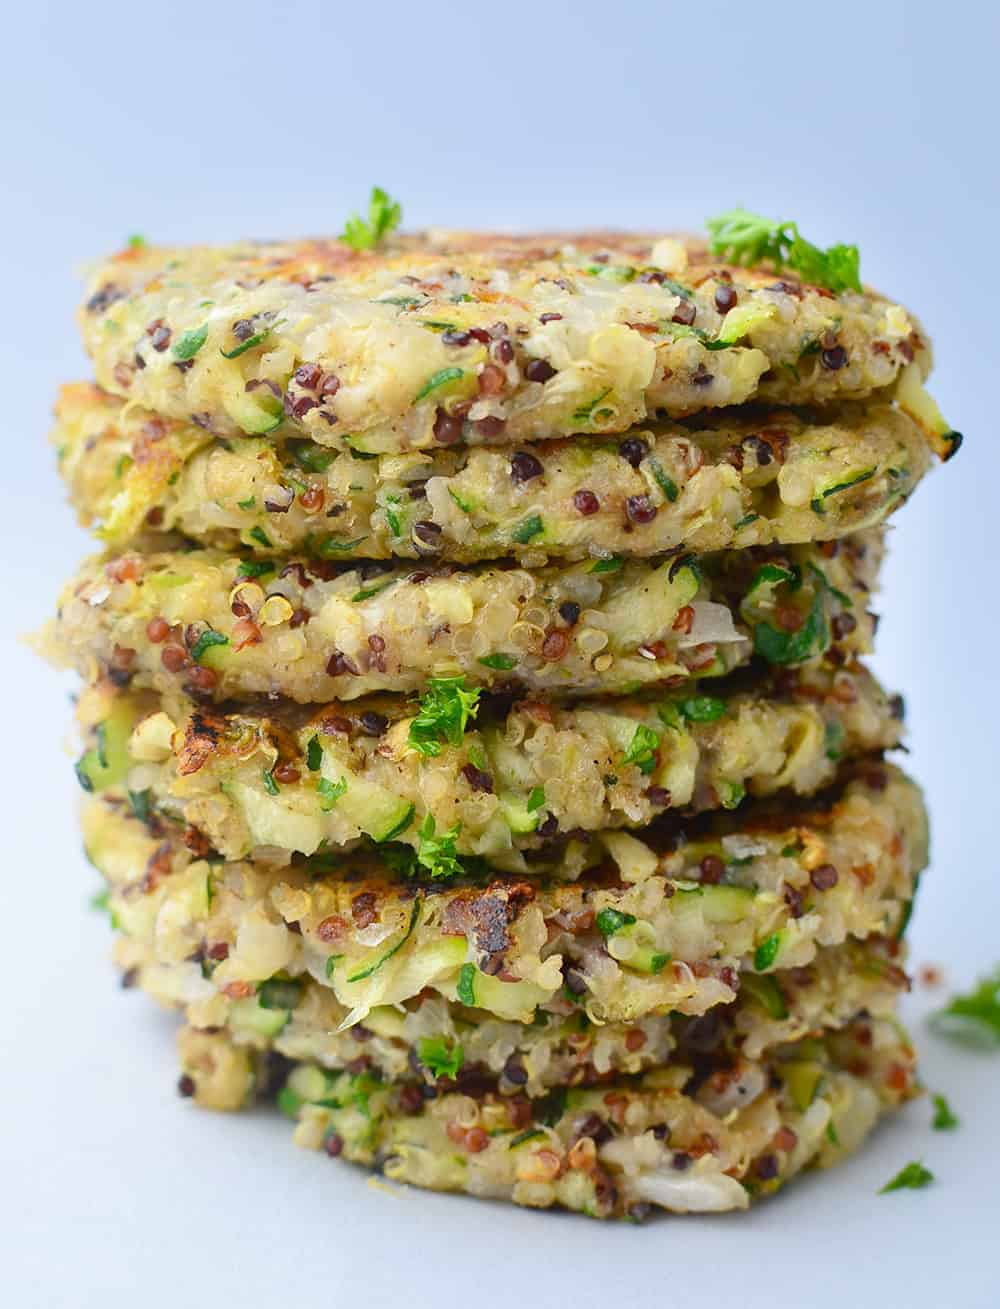 Stack of the Quinoa Zucchini Fritters after frying